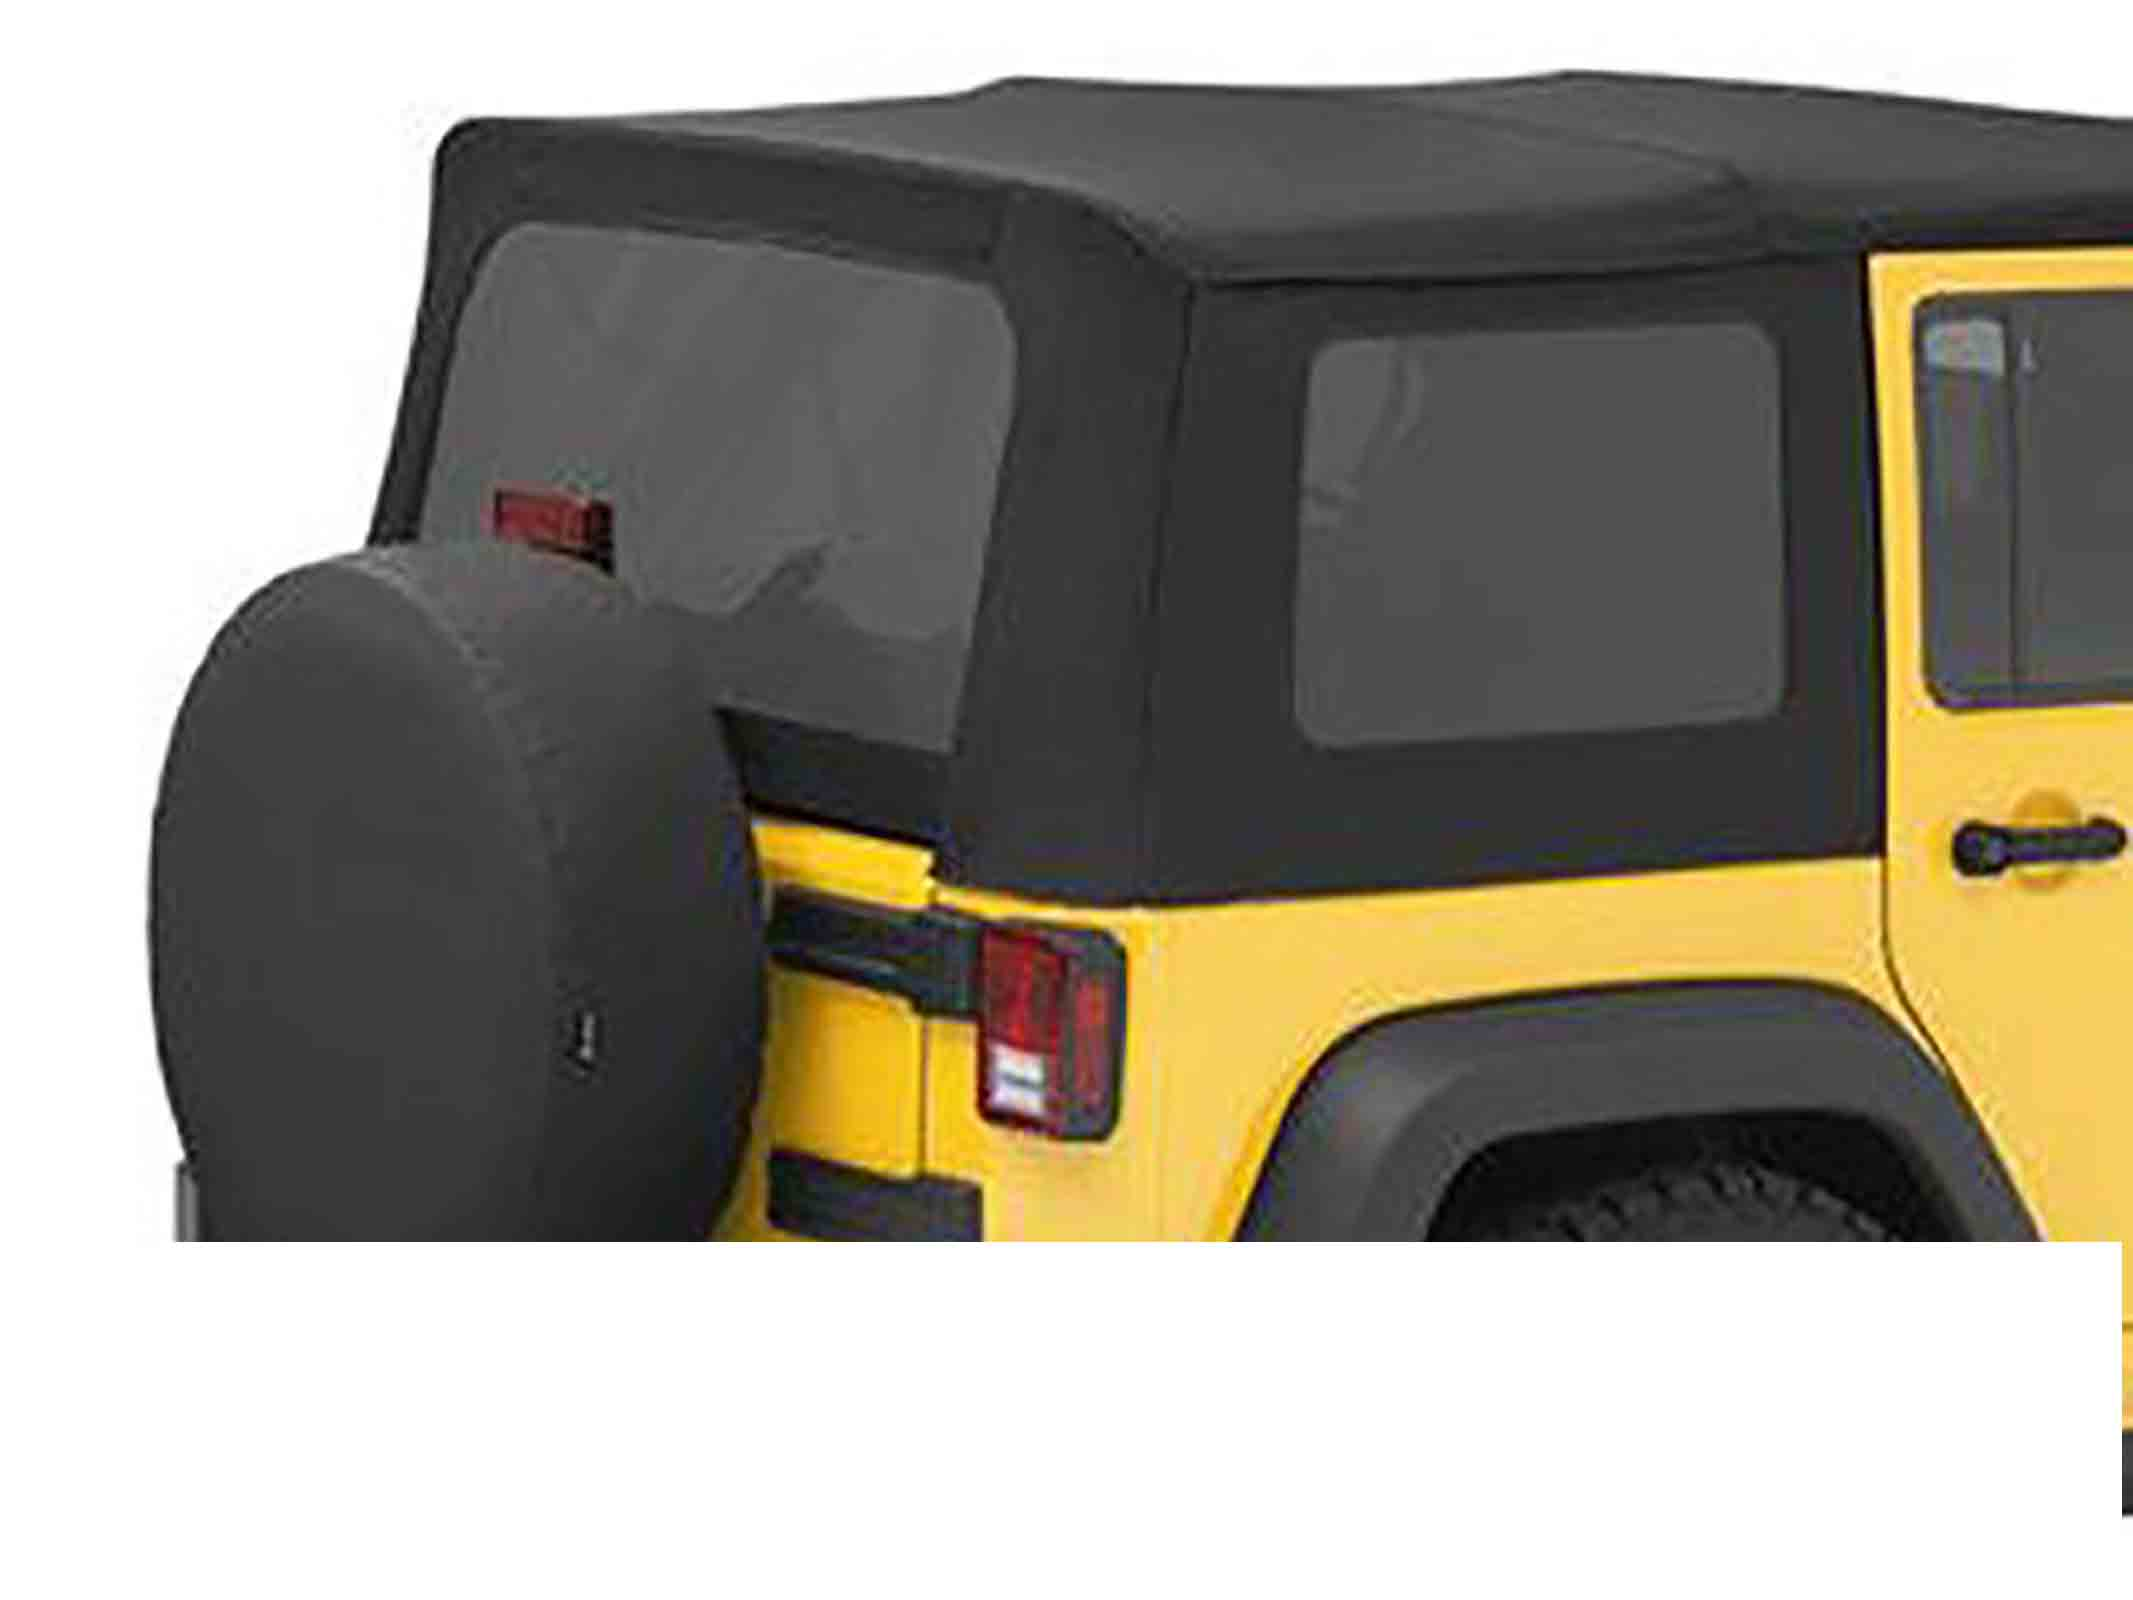 Vetri scuri wrangler jk unlimited 11 18 4 porte adatto per softtop soft top capottina originale ricam